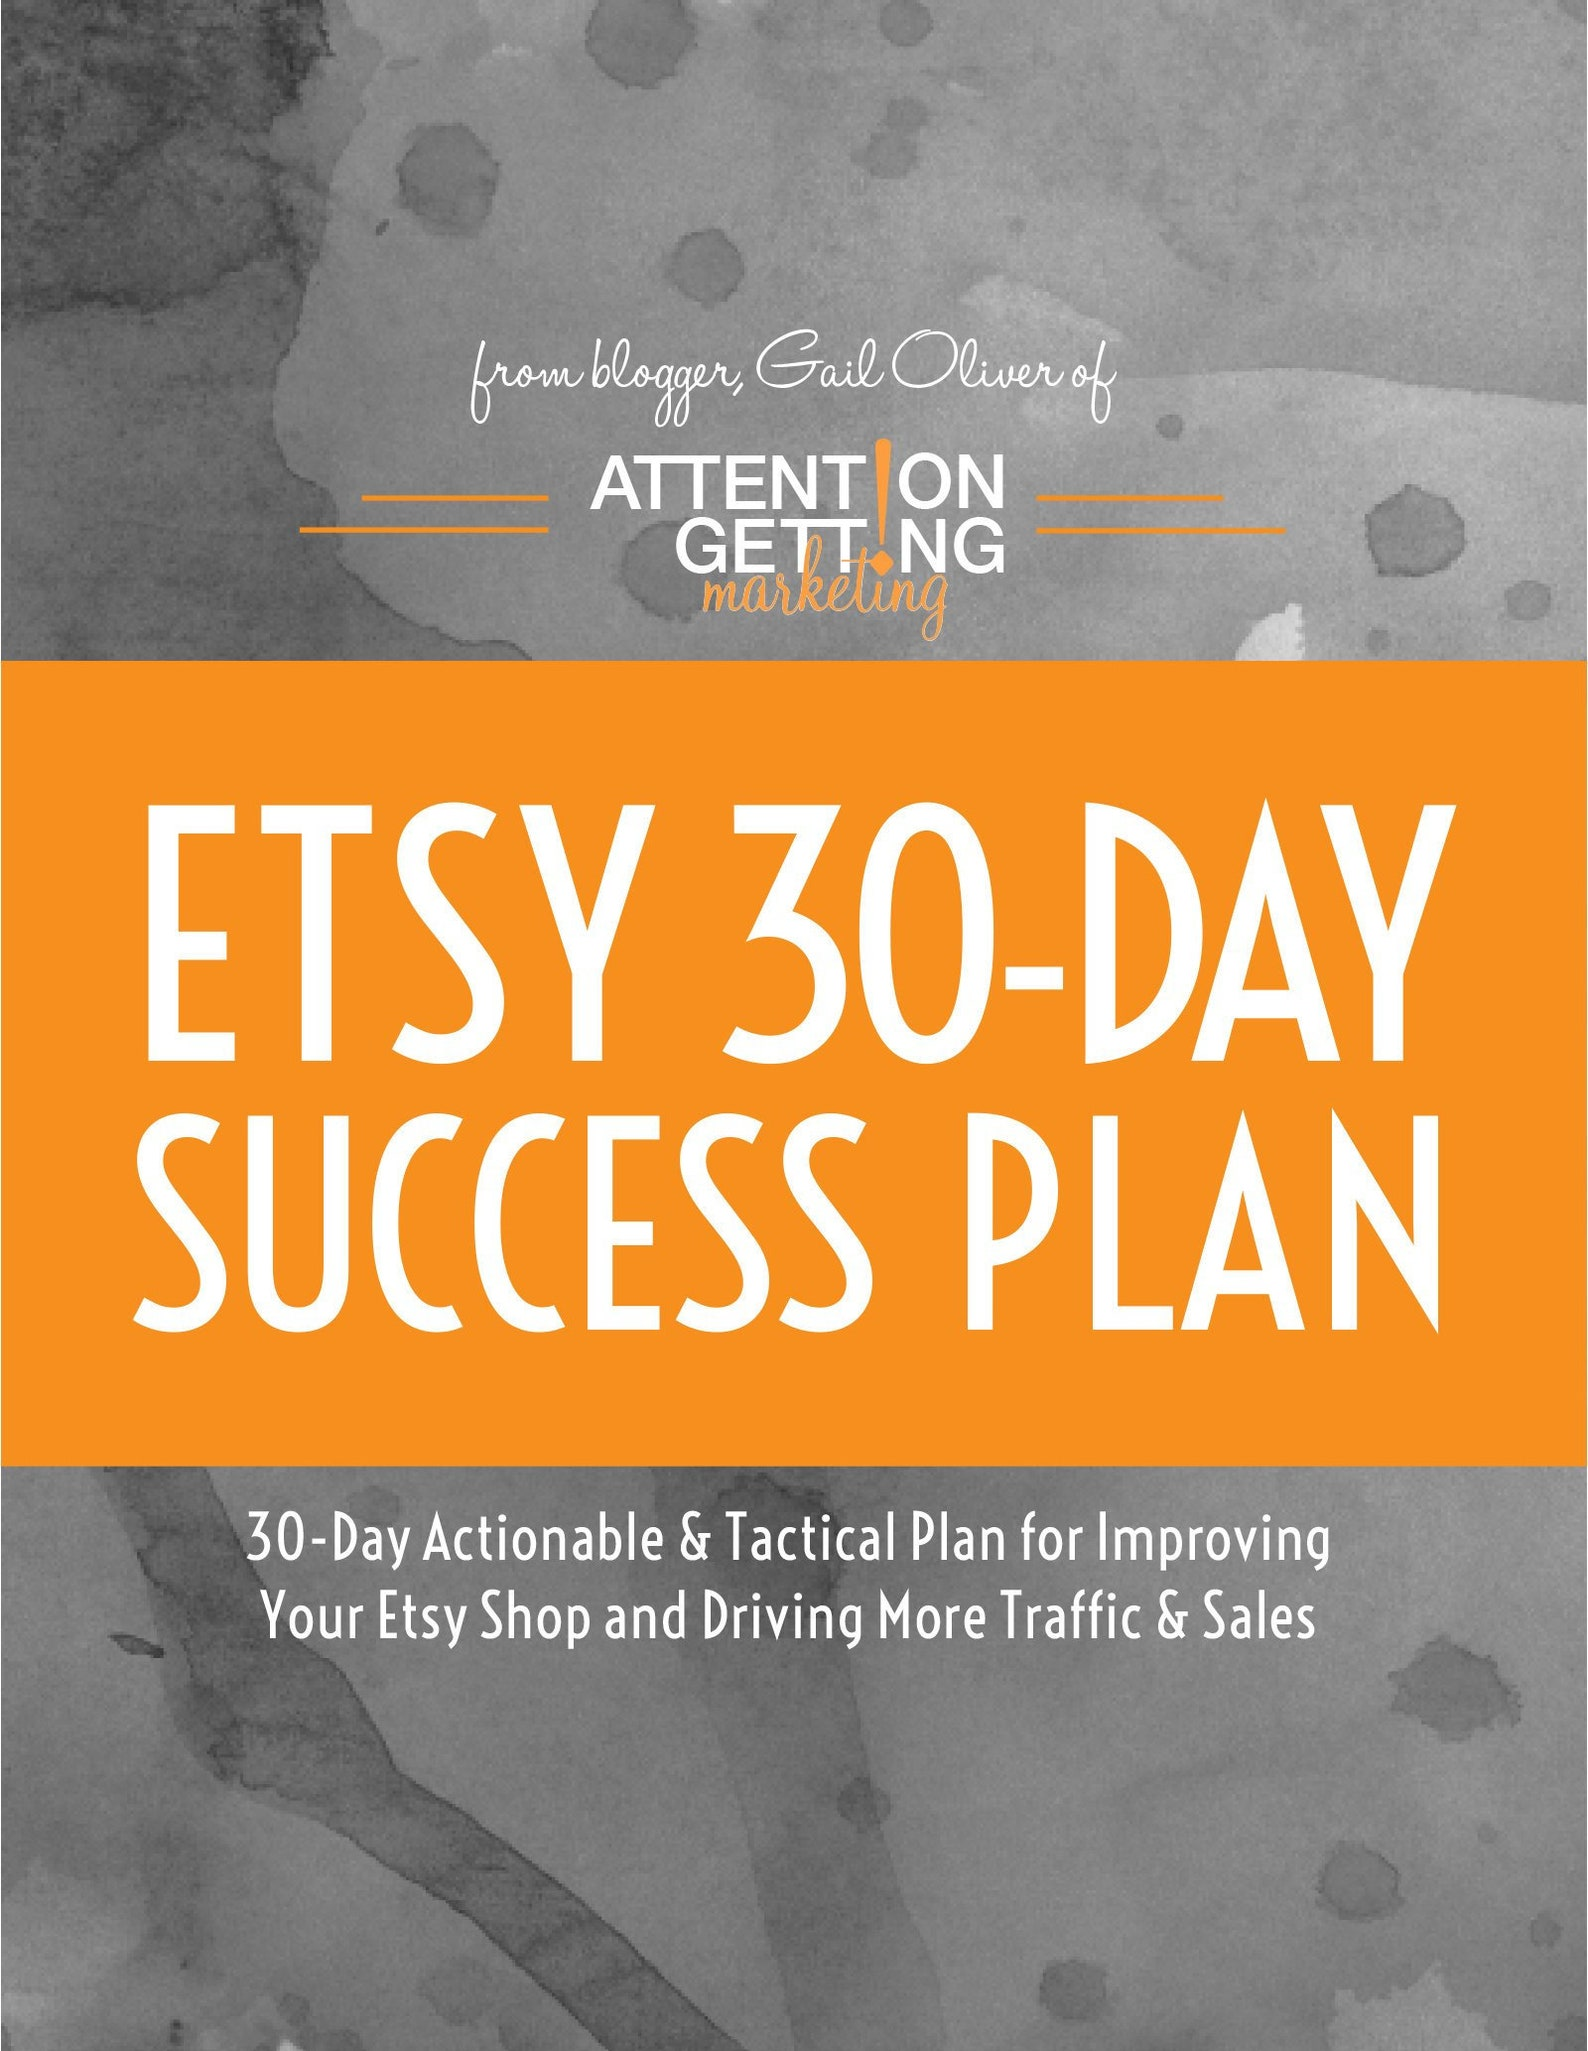 Etsy 30-Day Success Plan